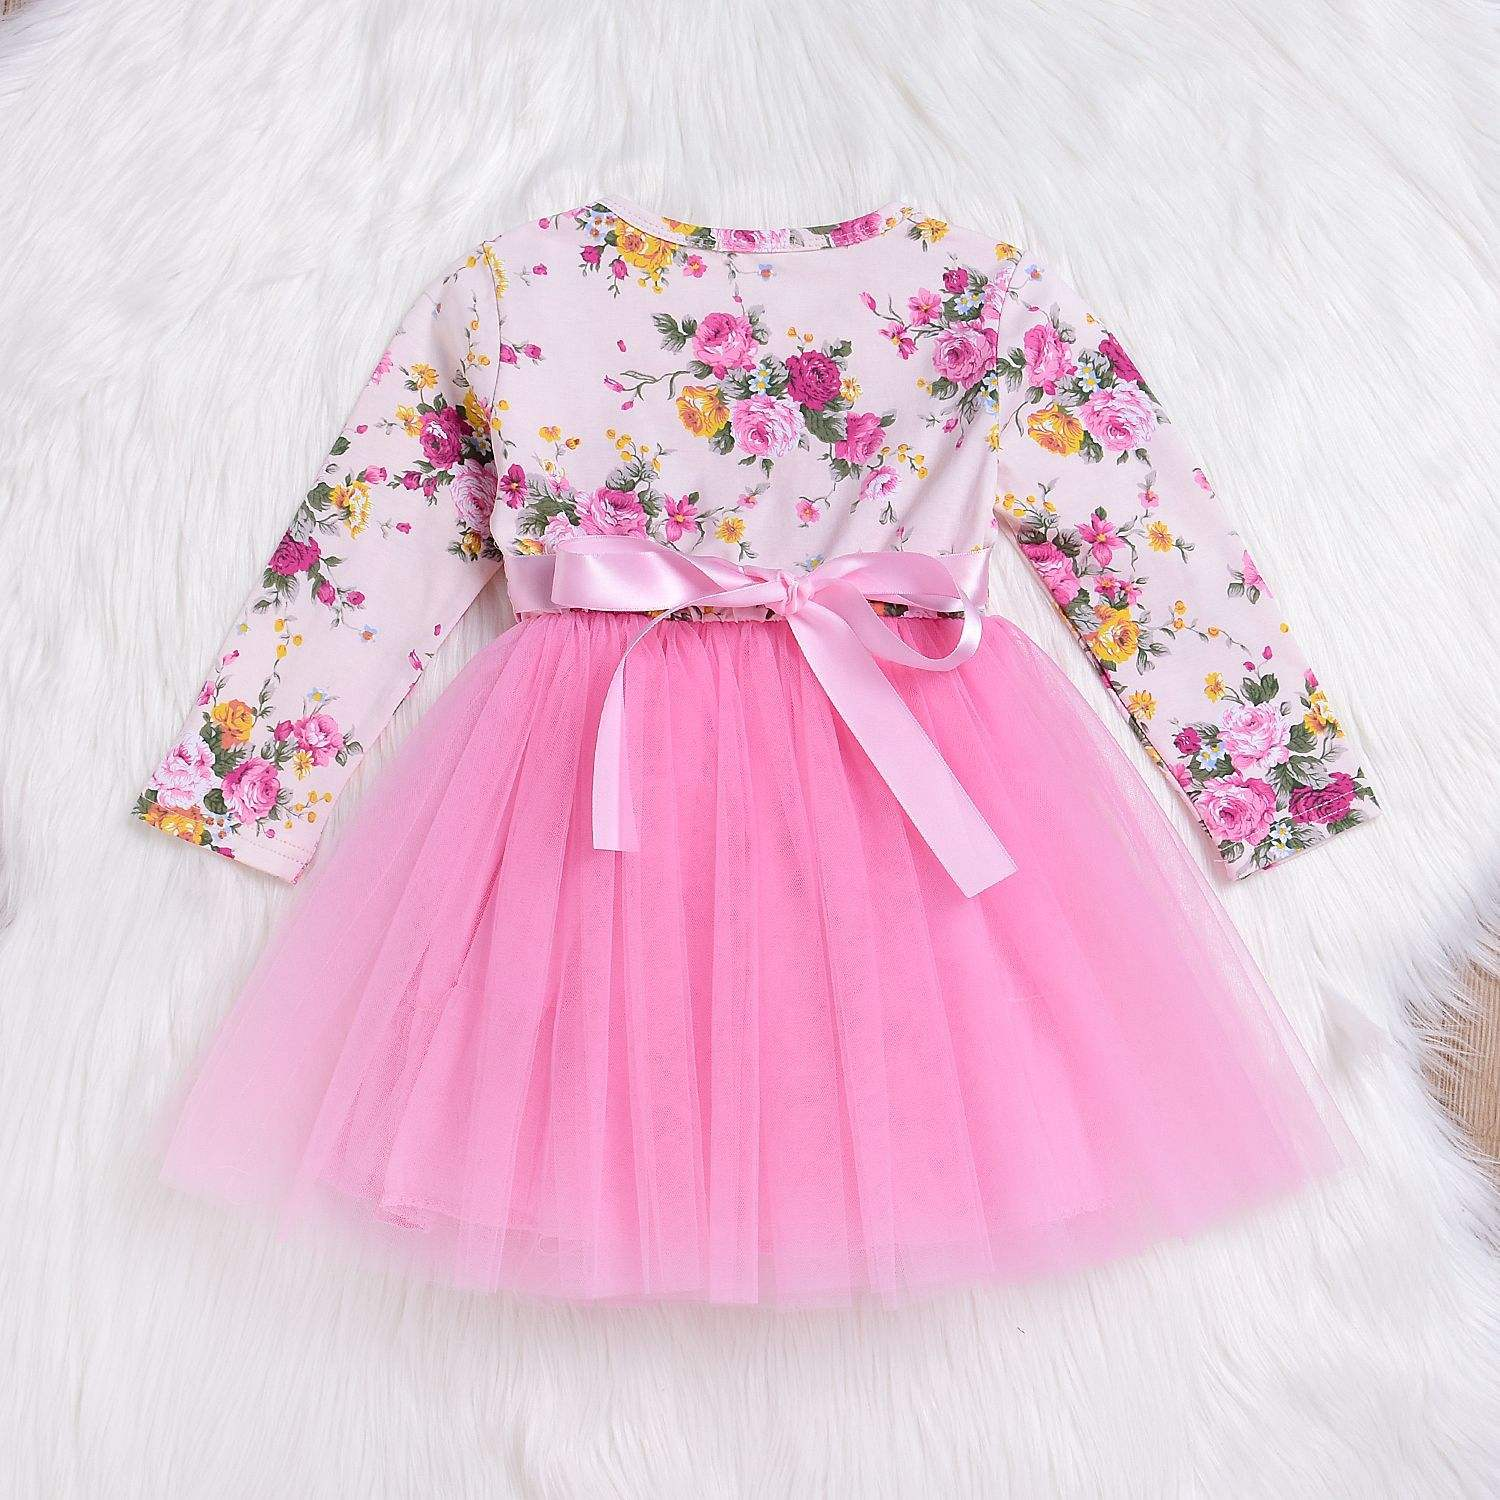 Autumn Baby Girl Dress Long Sleeve Pink Infant Dress For First Birthday Party Toddler Girls Clothes